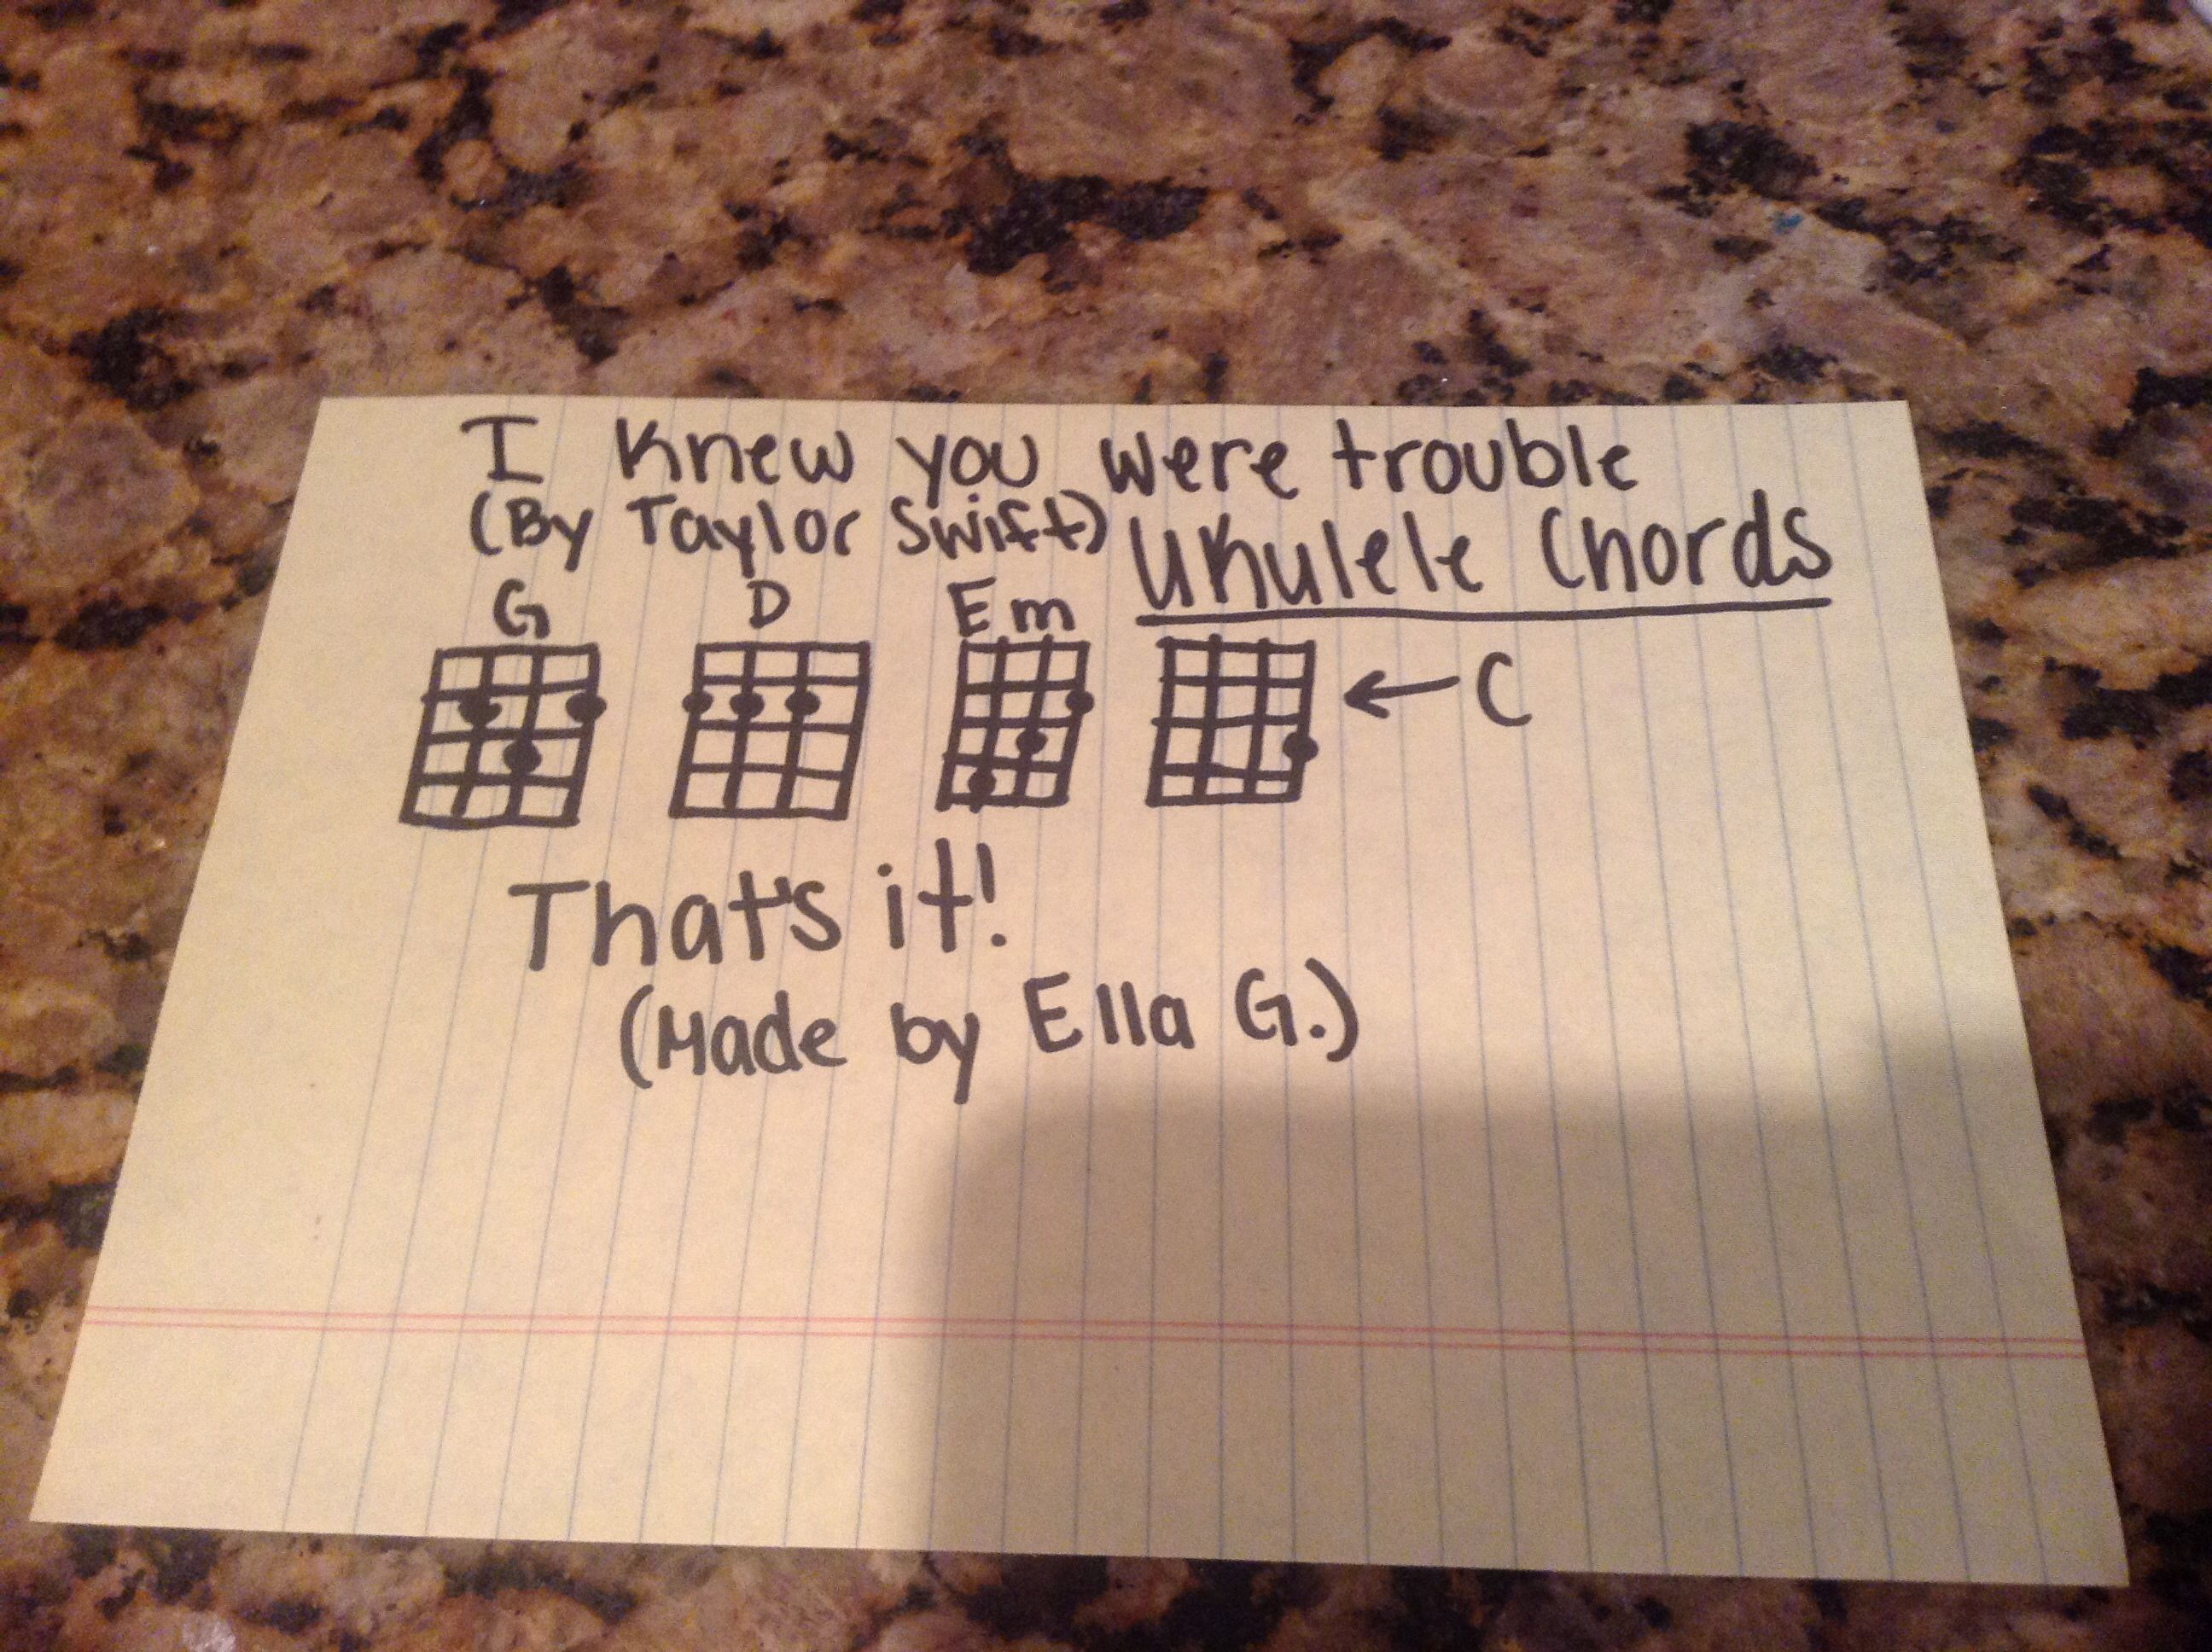 Taylor Swift Ikywt Chords For The Ukulele Please Comment If You